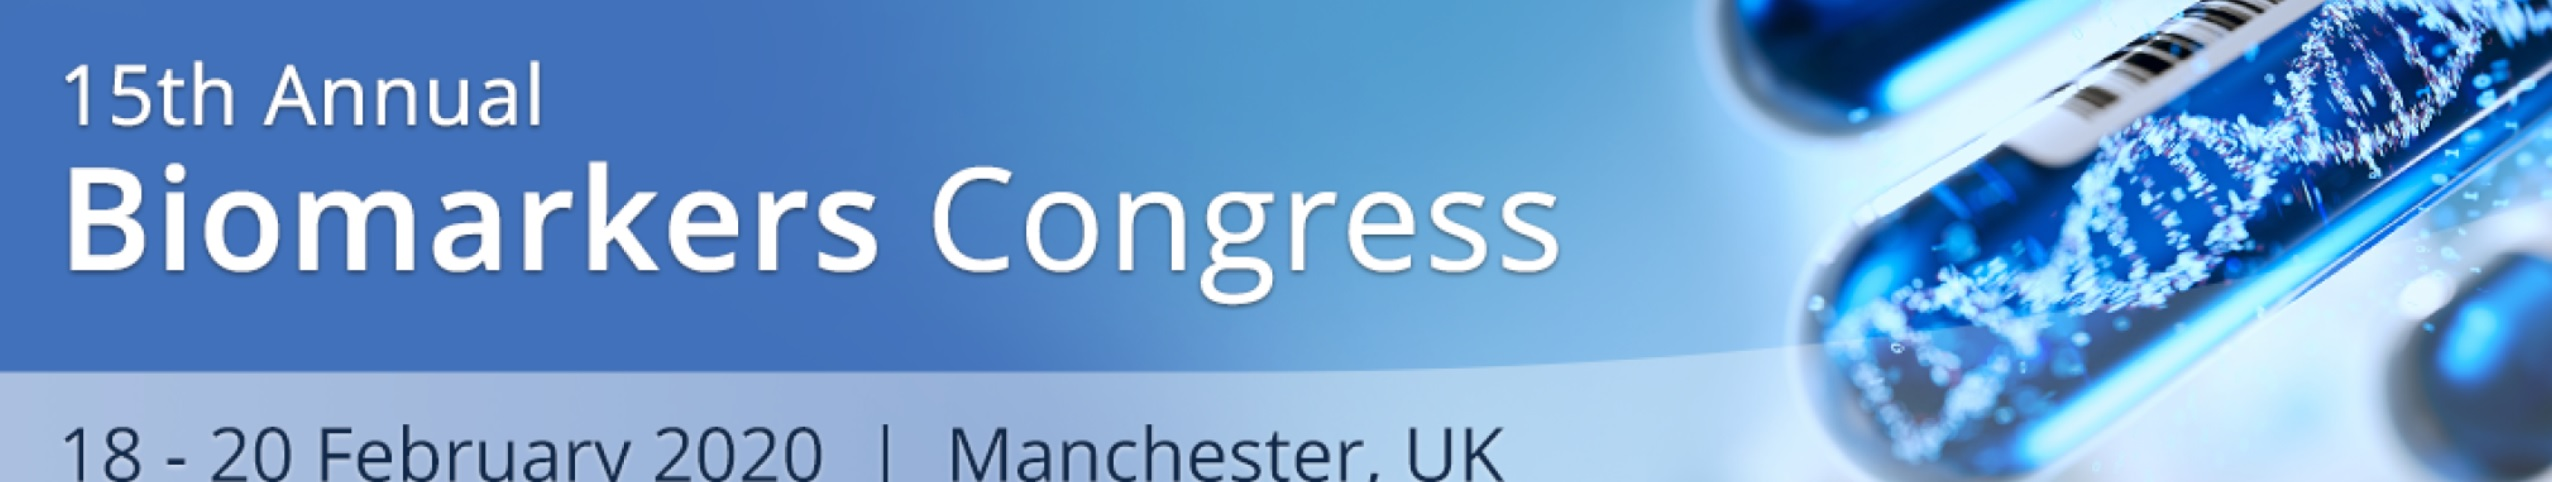 Affinity attends 15th annual Biomarkers Congress